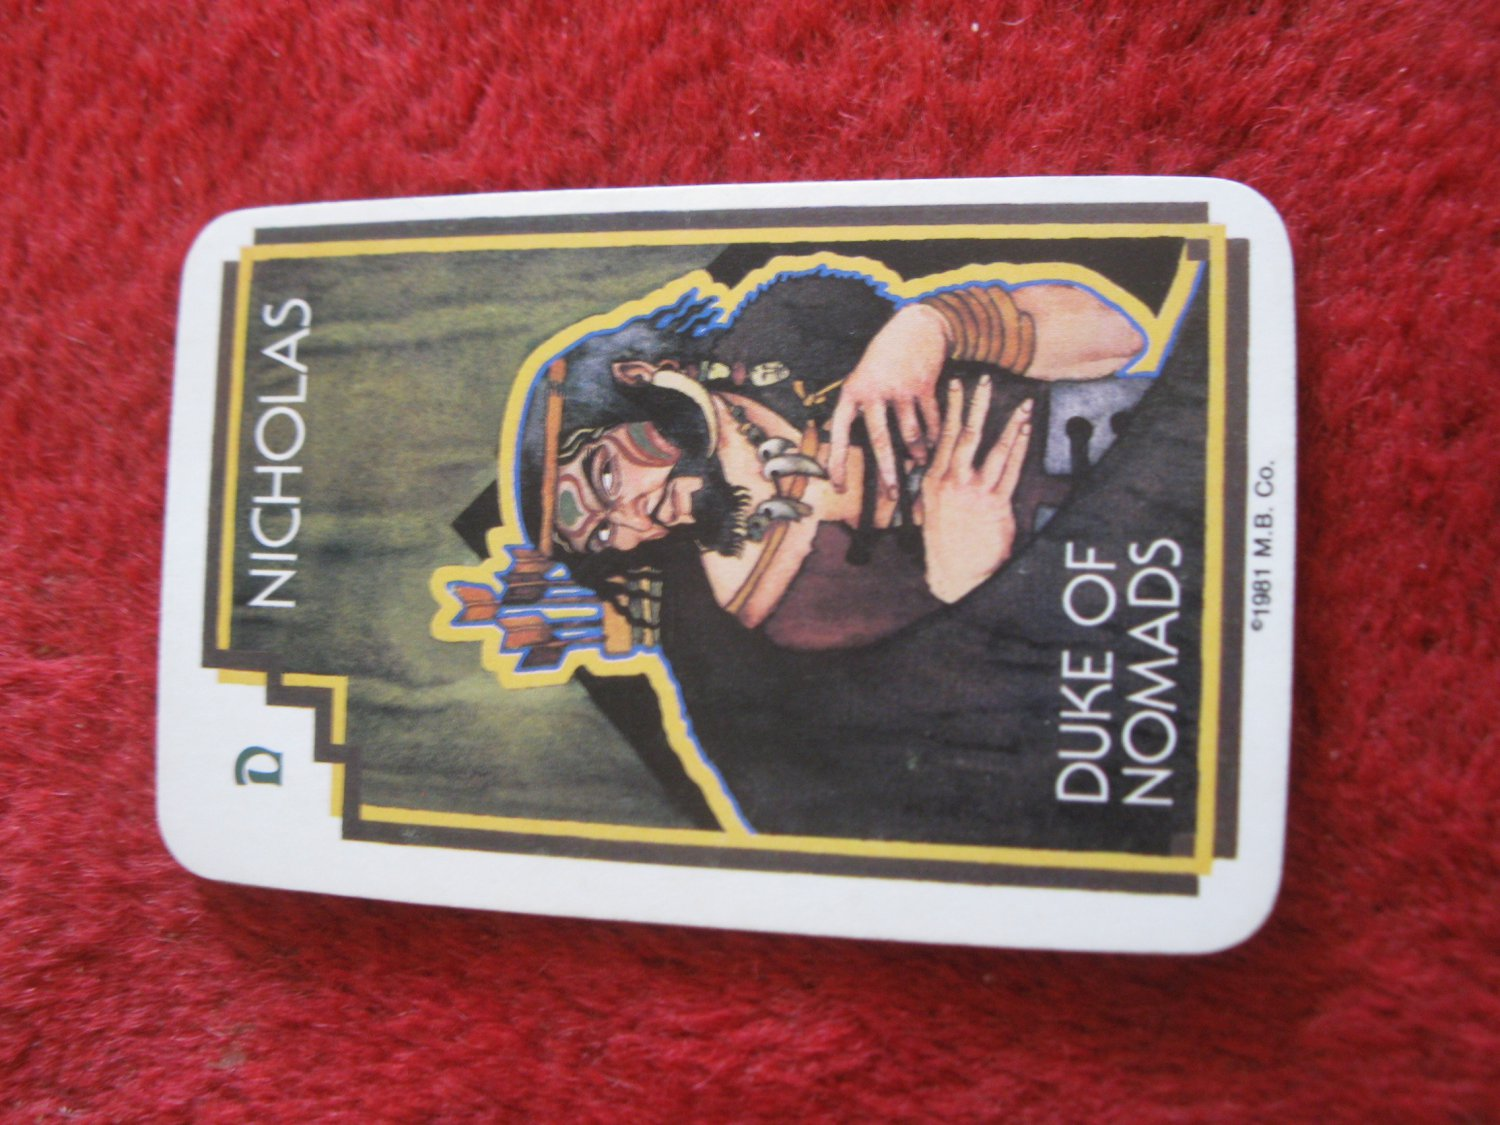 1981 DragonMaster Board game playing card: Nicholas, Duke of Nomads